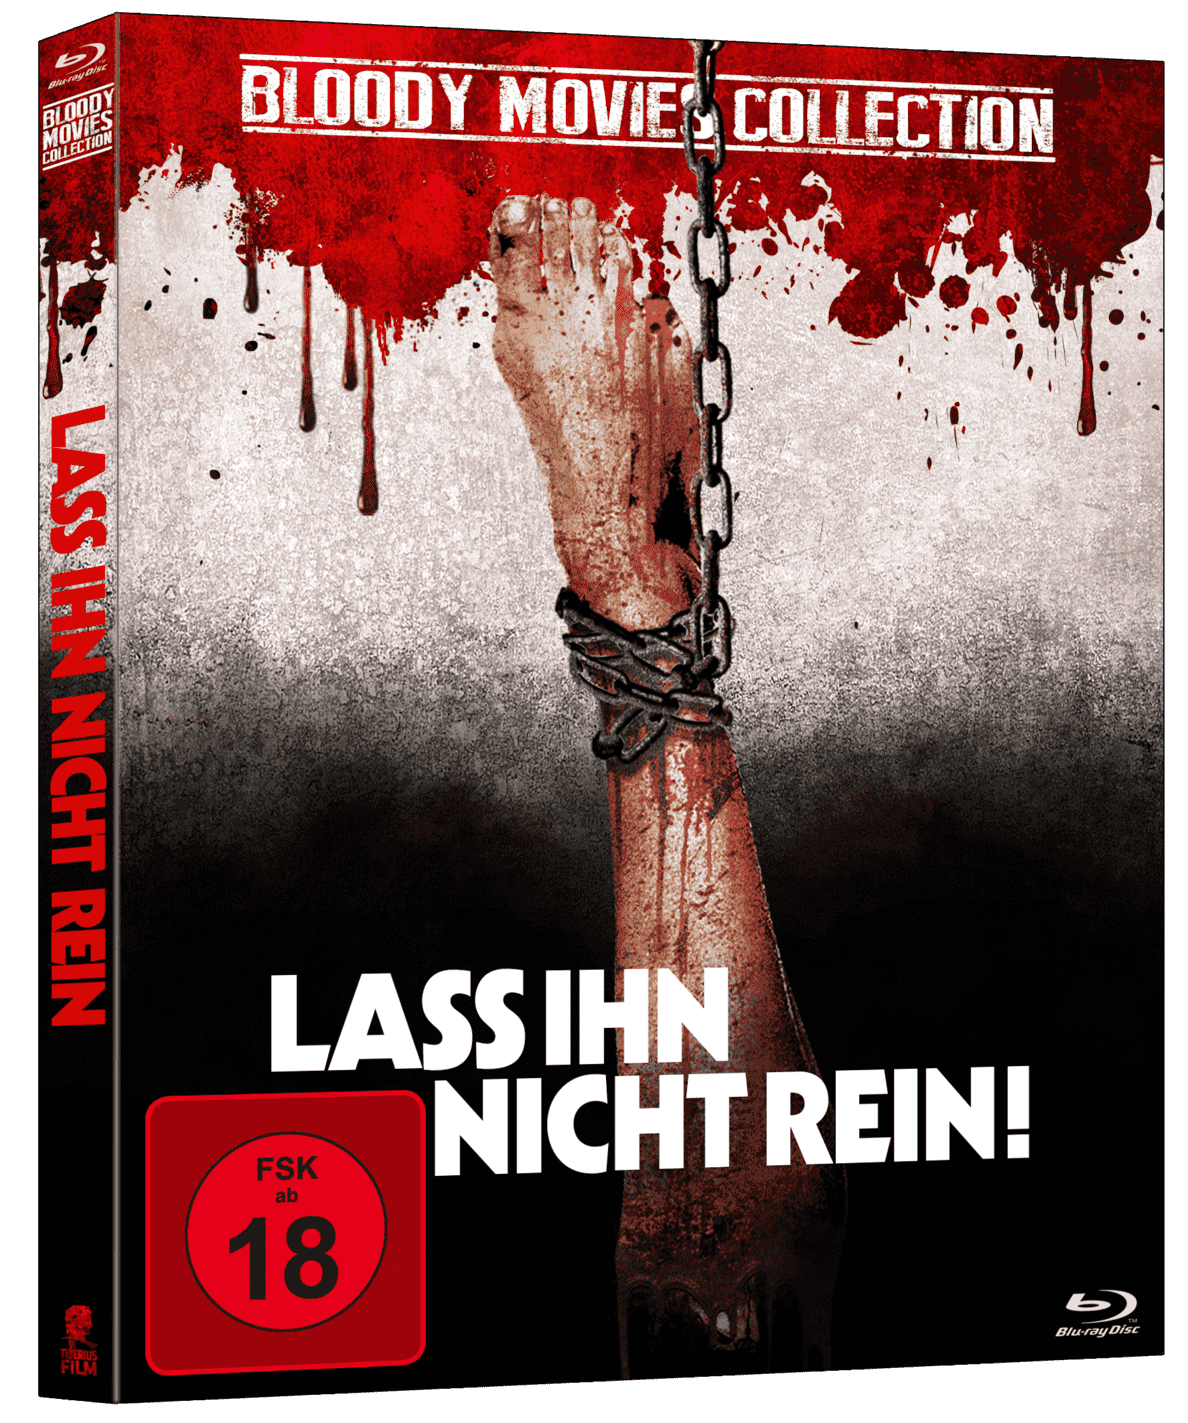 Lass ihn nicht rein! (Bloody Movies Collection) auf Blu-ray